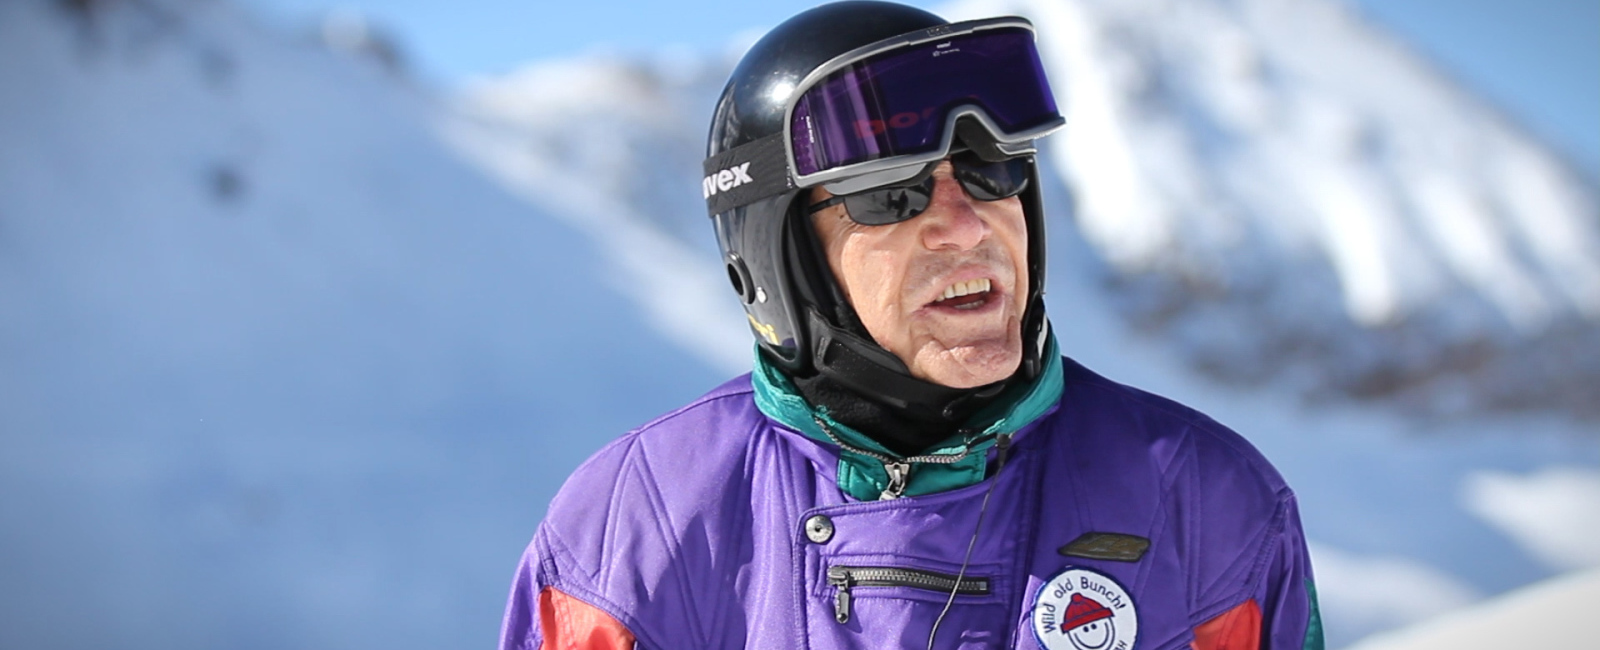 98-Year-Old Skier George - The Powder Philosophy